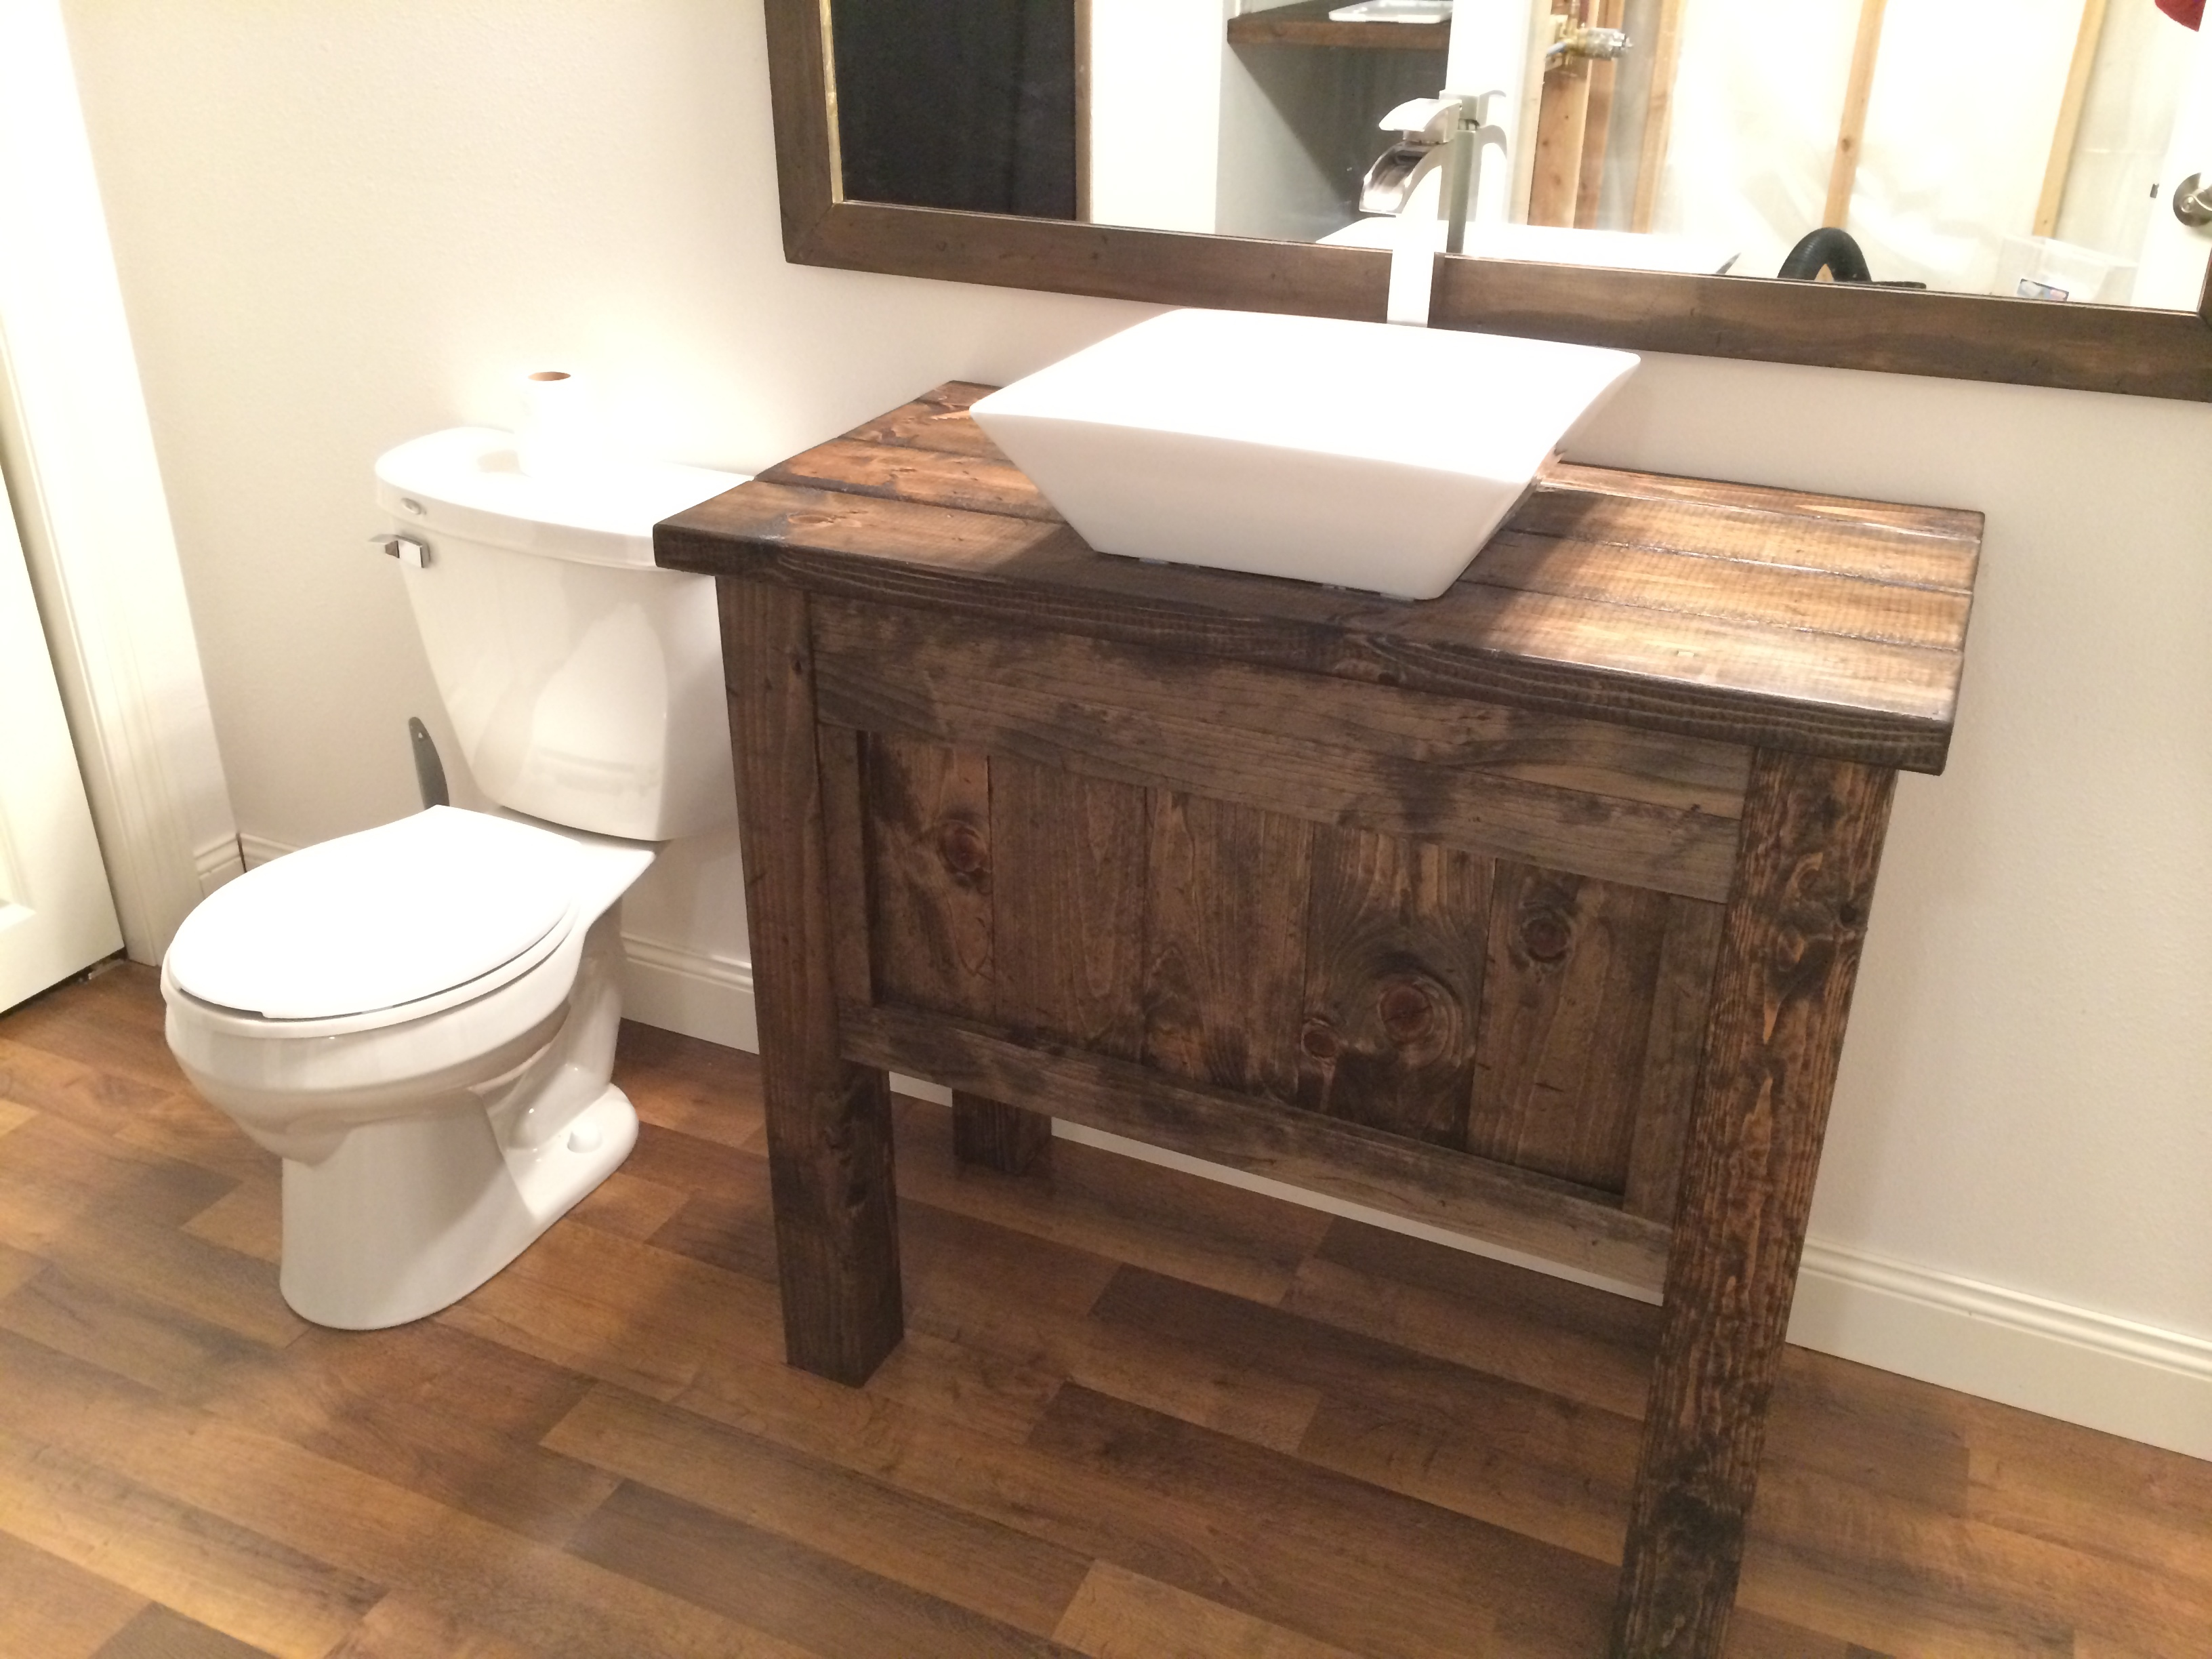 Rustic Farmhouse Bathroom Vanity With